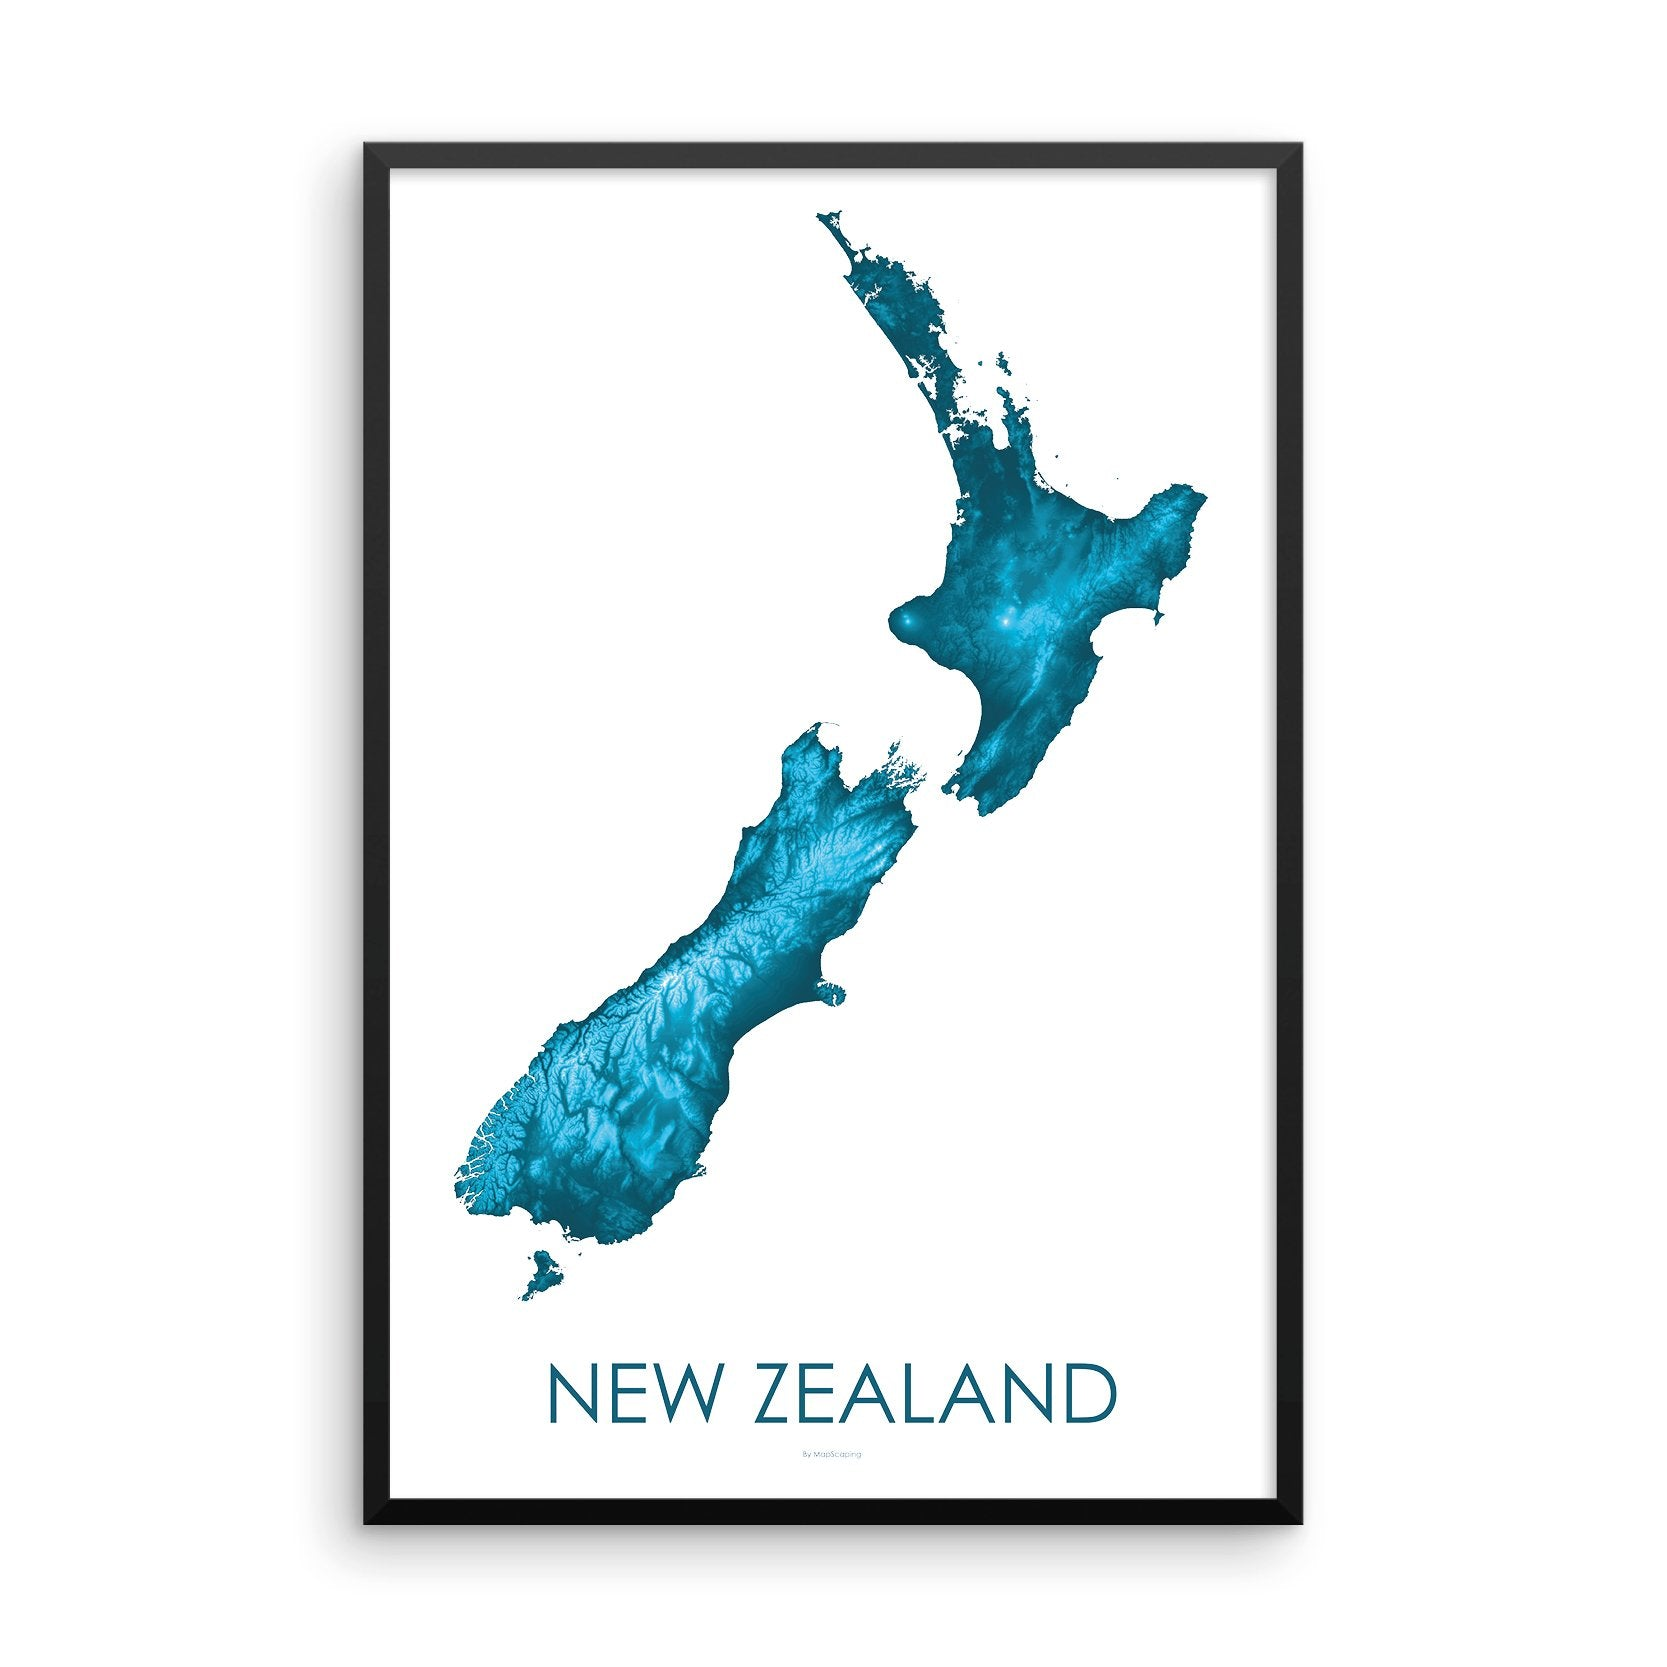 Framed Petroleum Blue poster map of New Zealand's North and South Islands, detailed map print showing the mountains of New Zealand's landscape.